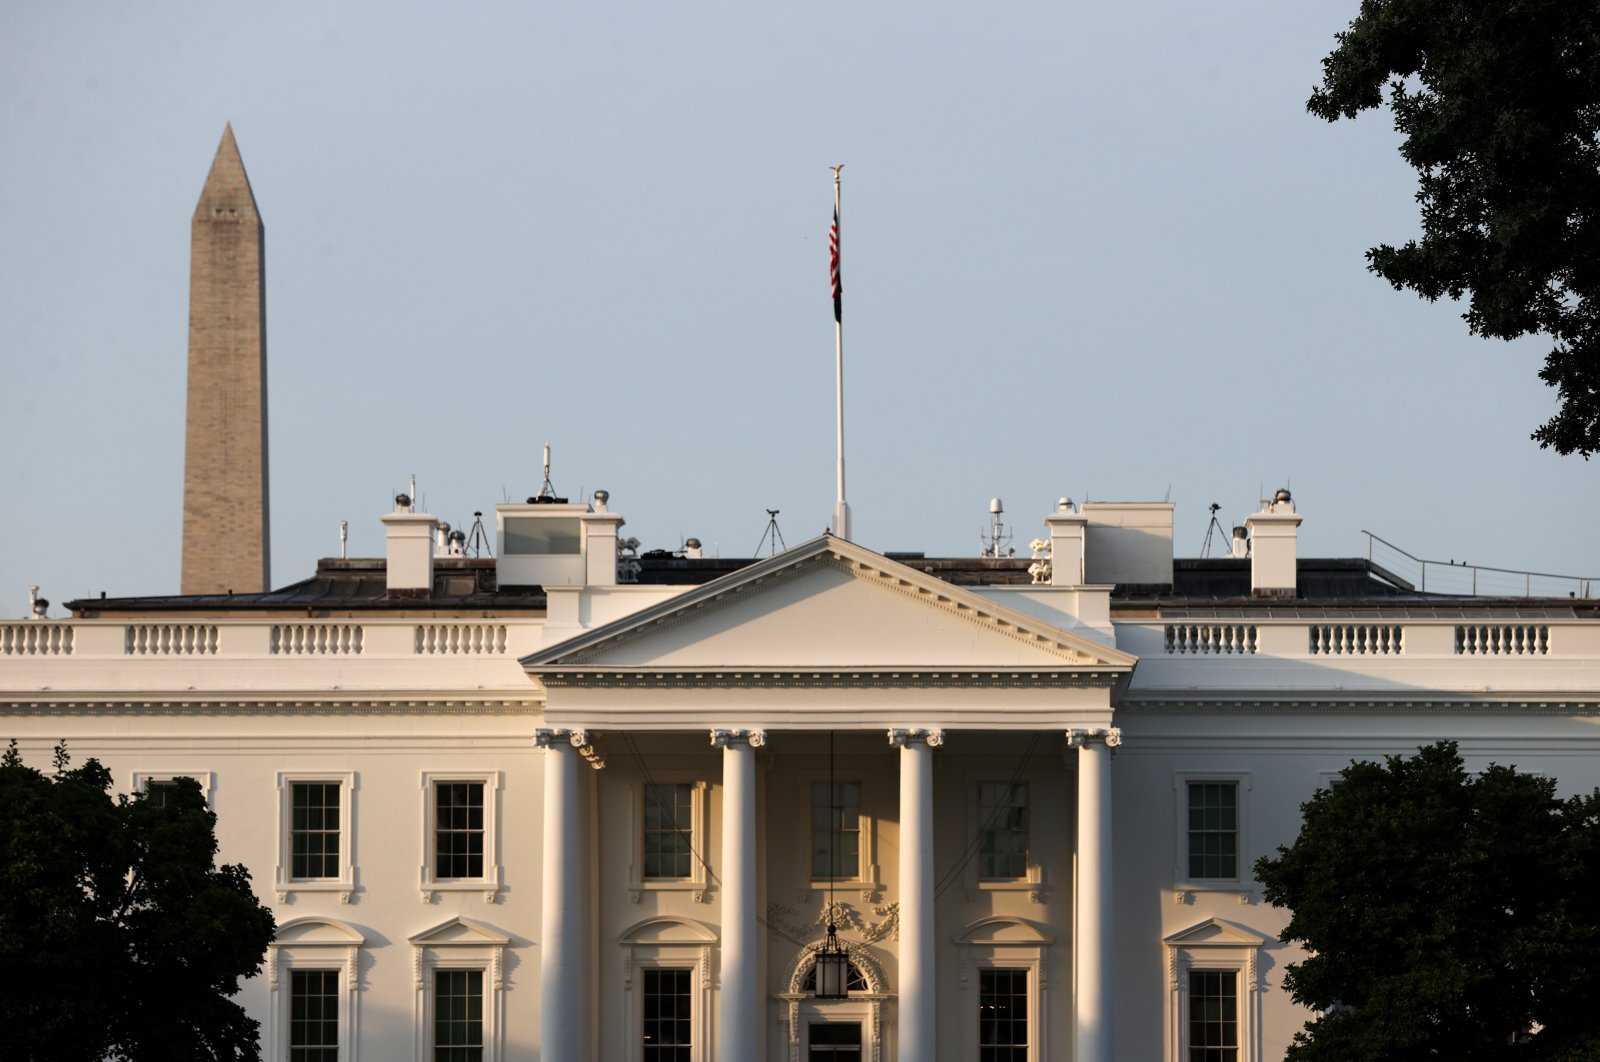 A general view of the White House in Washington, D.C., U.S., July 15, 2021. (Reuters Photo)